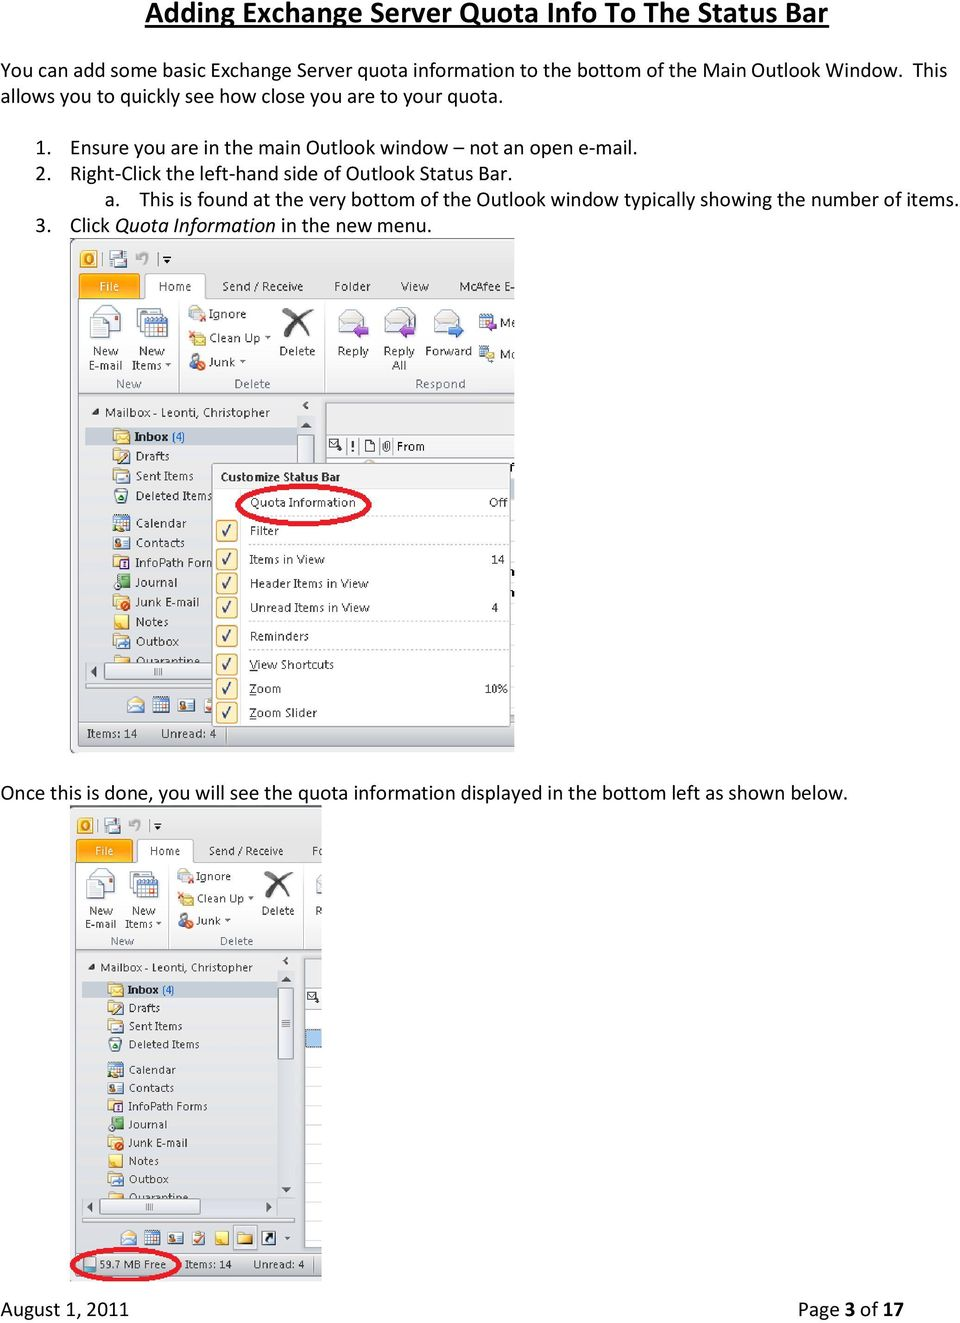 Right-Click the left-hand side of Outlook Status Bar. a. This is found at the very bottom of the Outlook window typically showing the number of items.